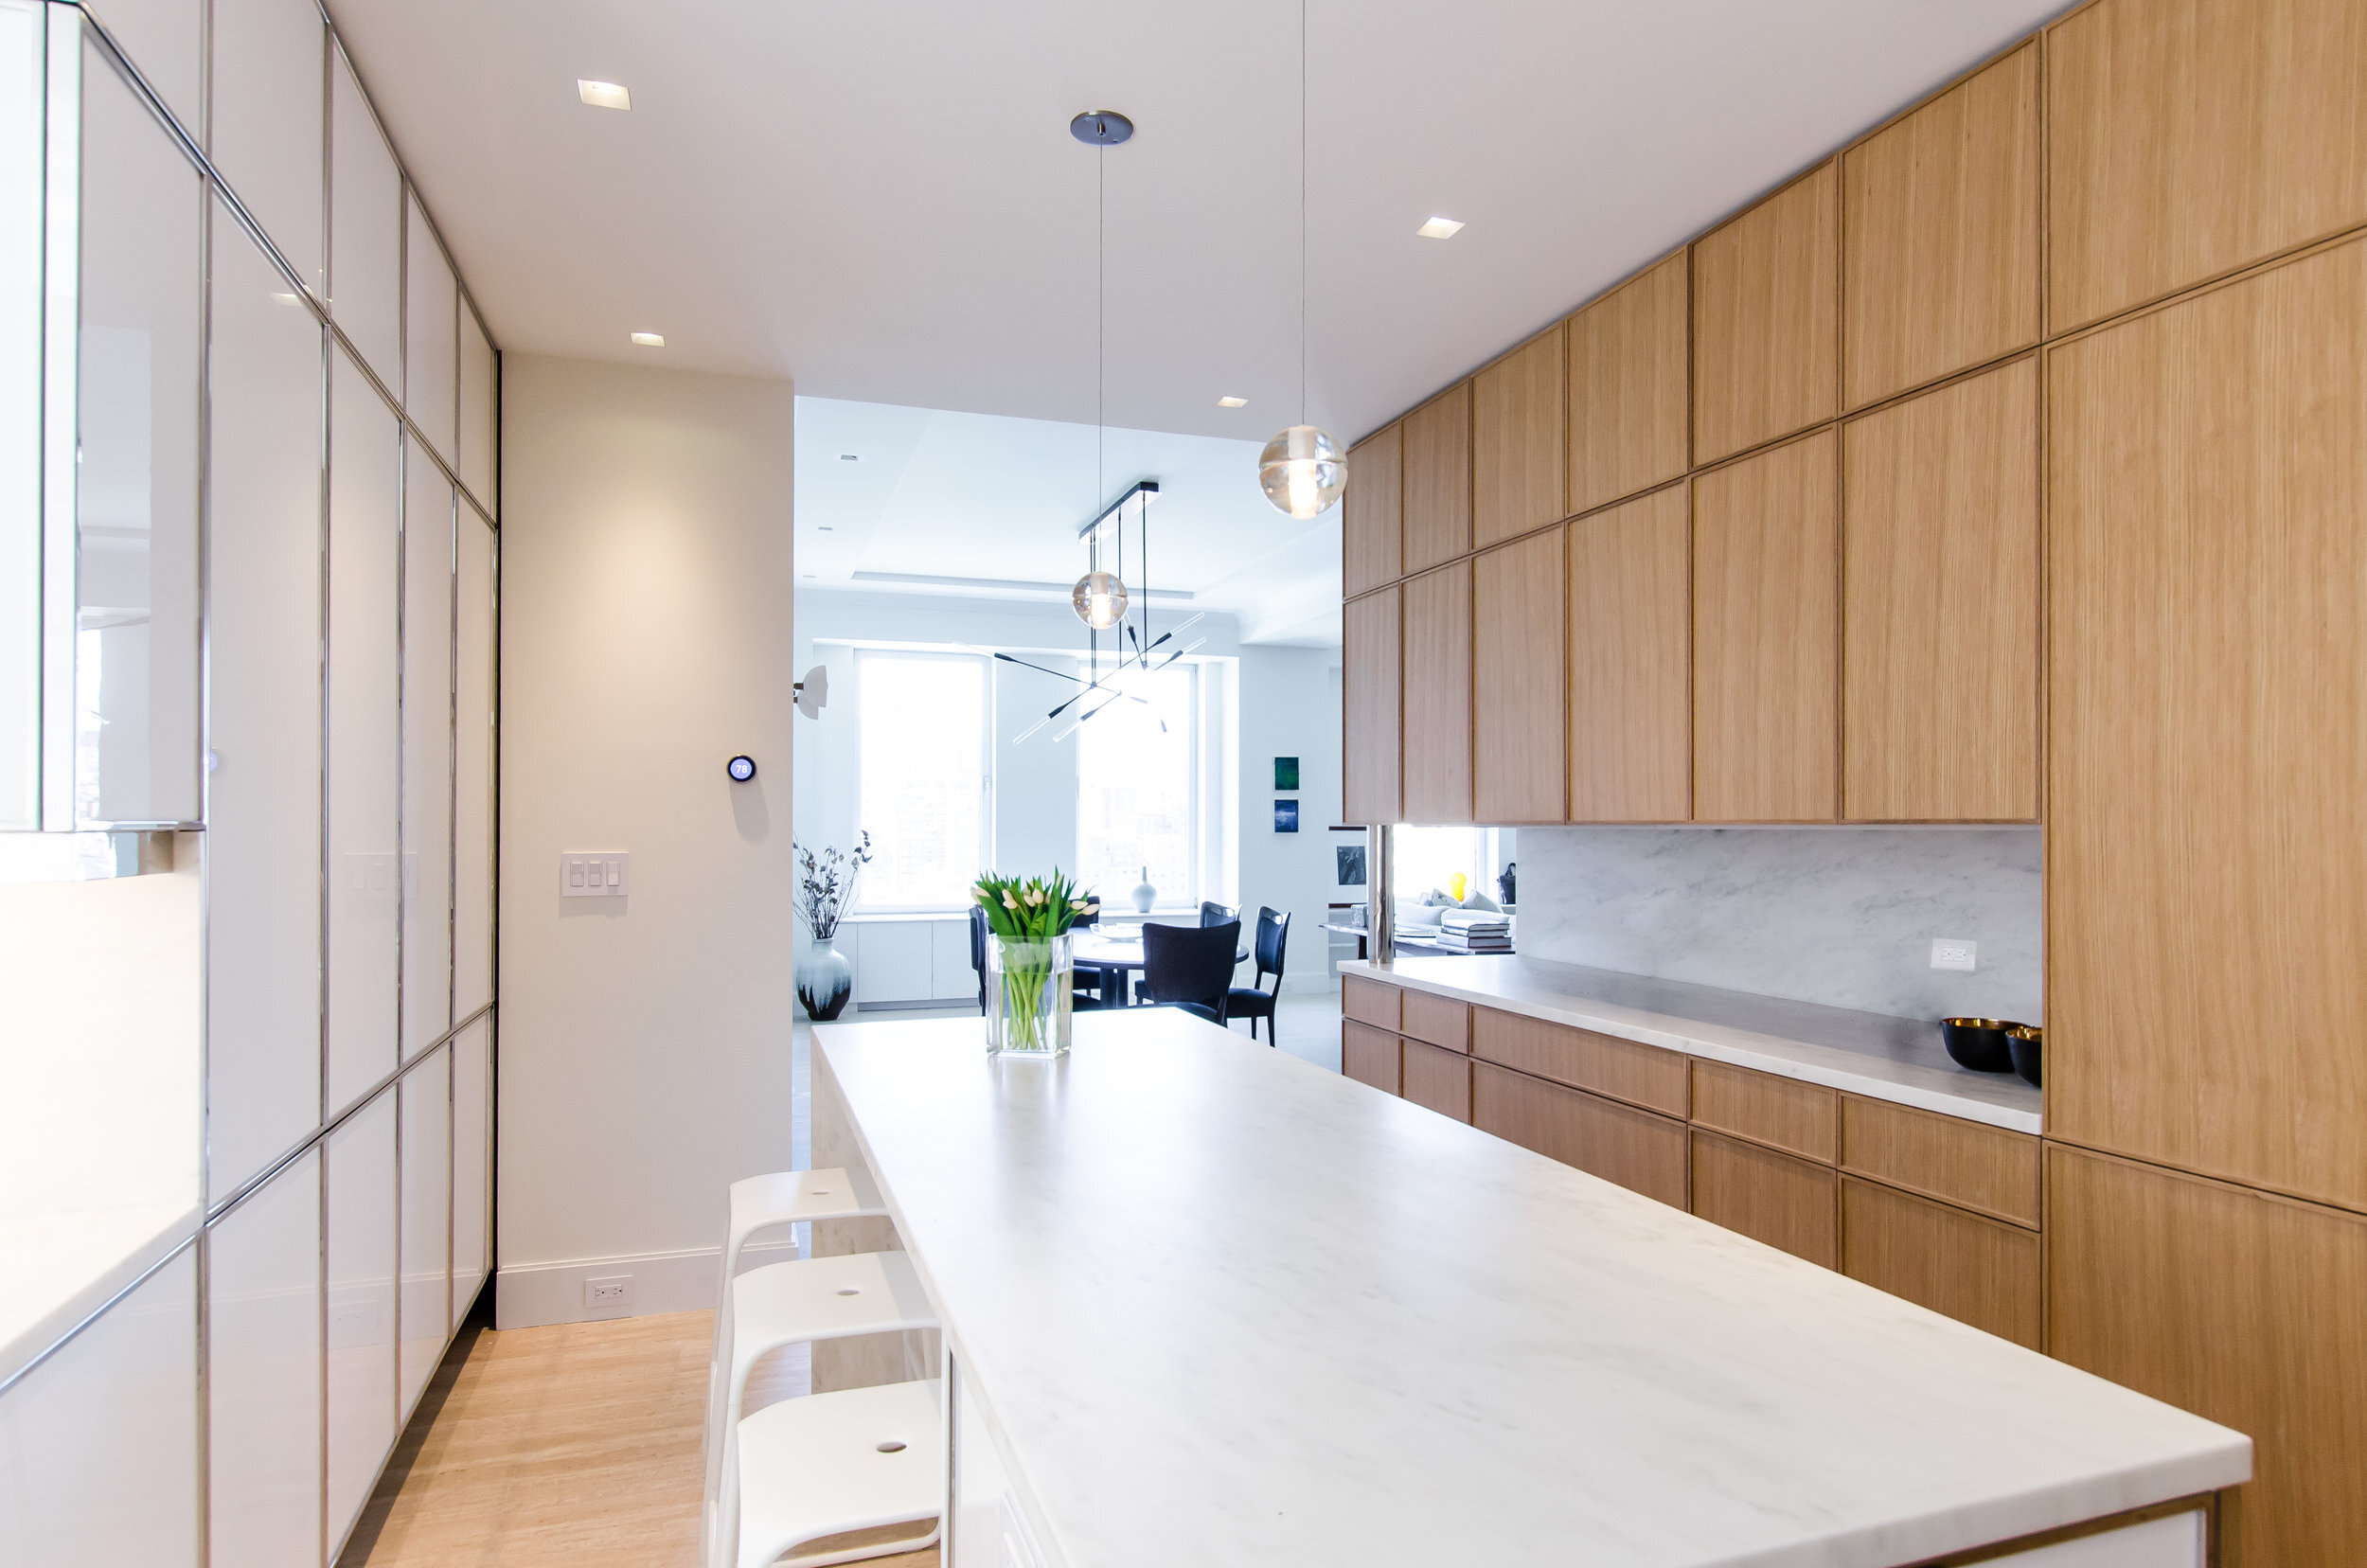 residential-projects-ParkAve-residence2-comp1.jpg